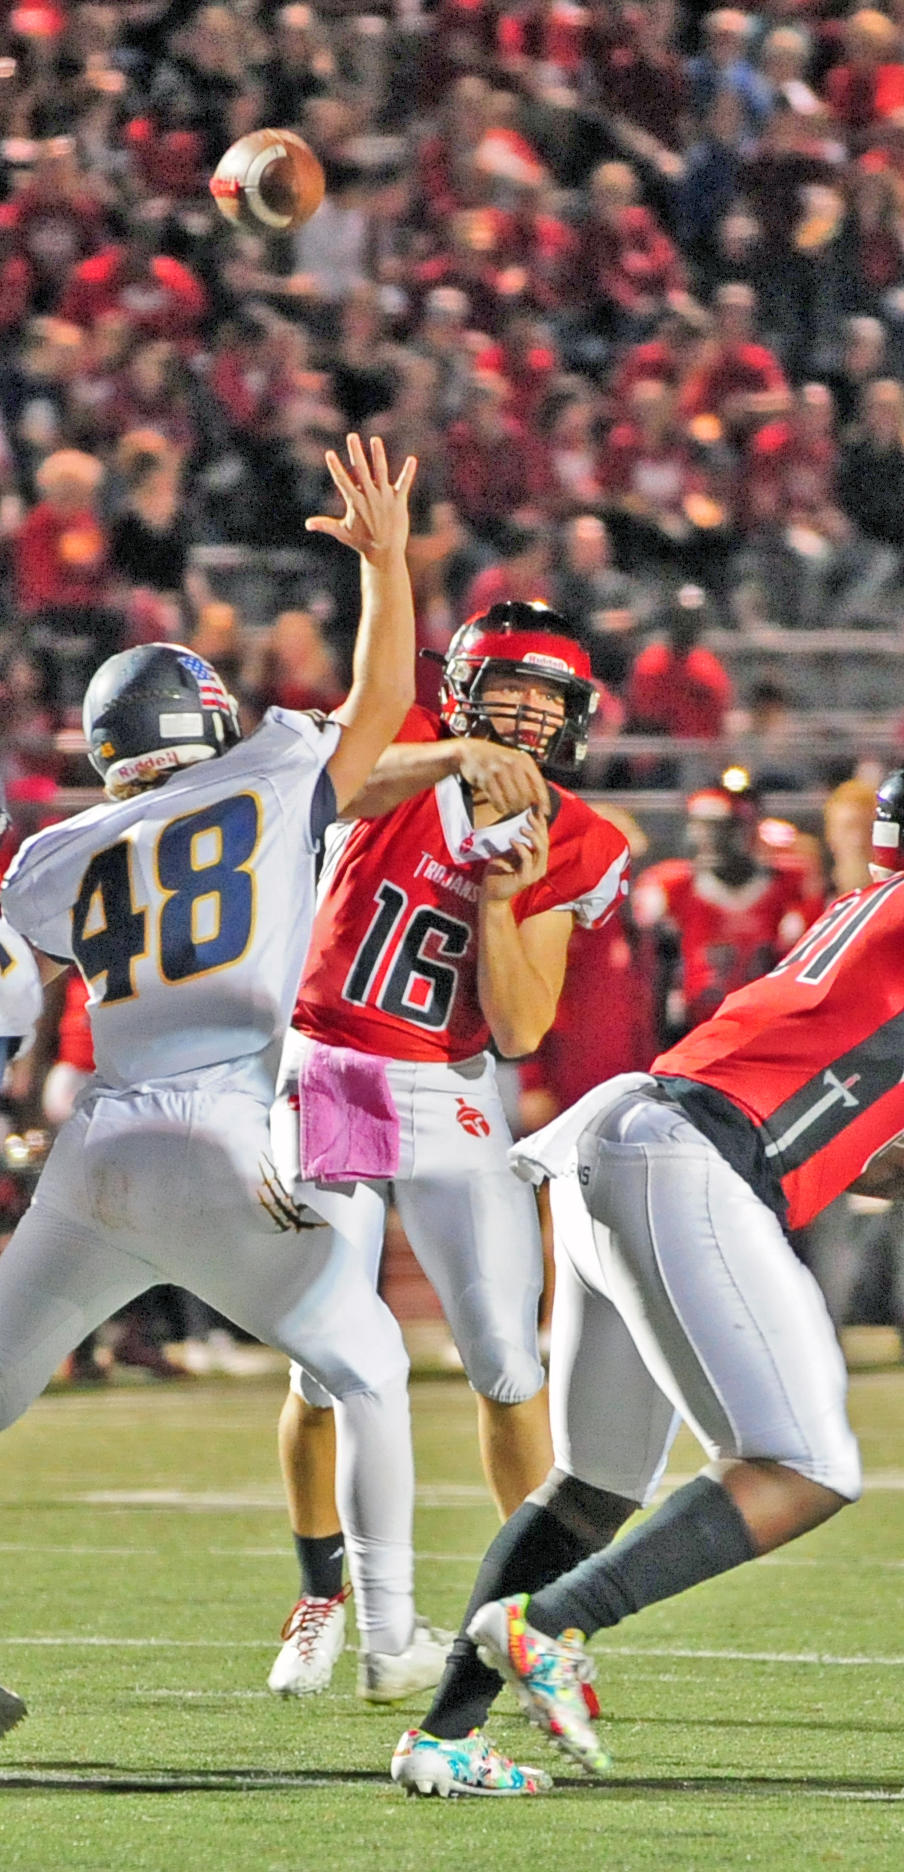 NICK INGRAM/Citizen photo Park Hill senior quarterback Billy Maples threw for more than 400 yards in the Trojans' 45-23 victory.